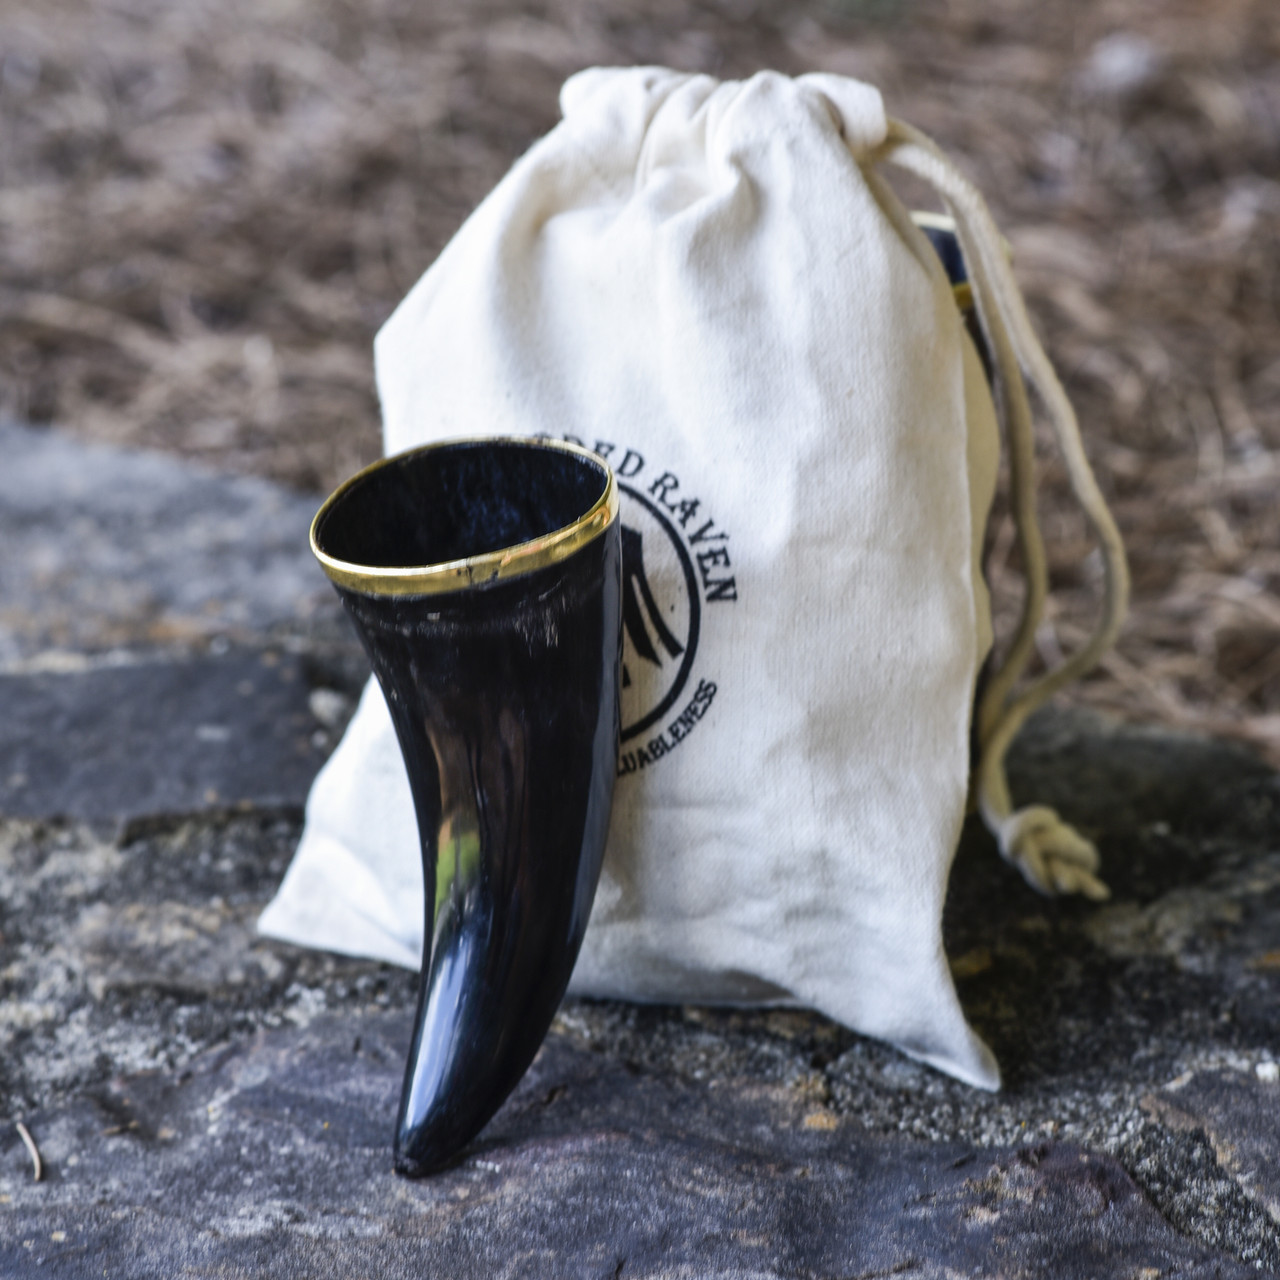 The Hooded Raven 'Ñ¢ 3-Piece Drinking Horn Shot Set Canvas Bag Carrier Included